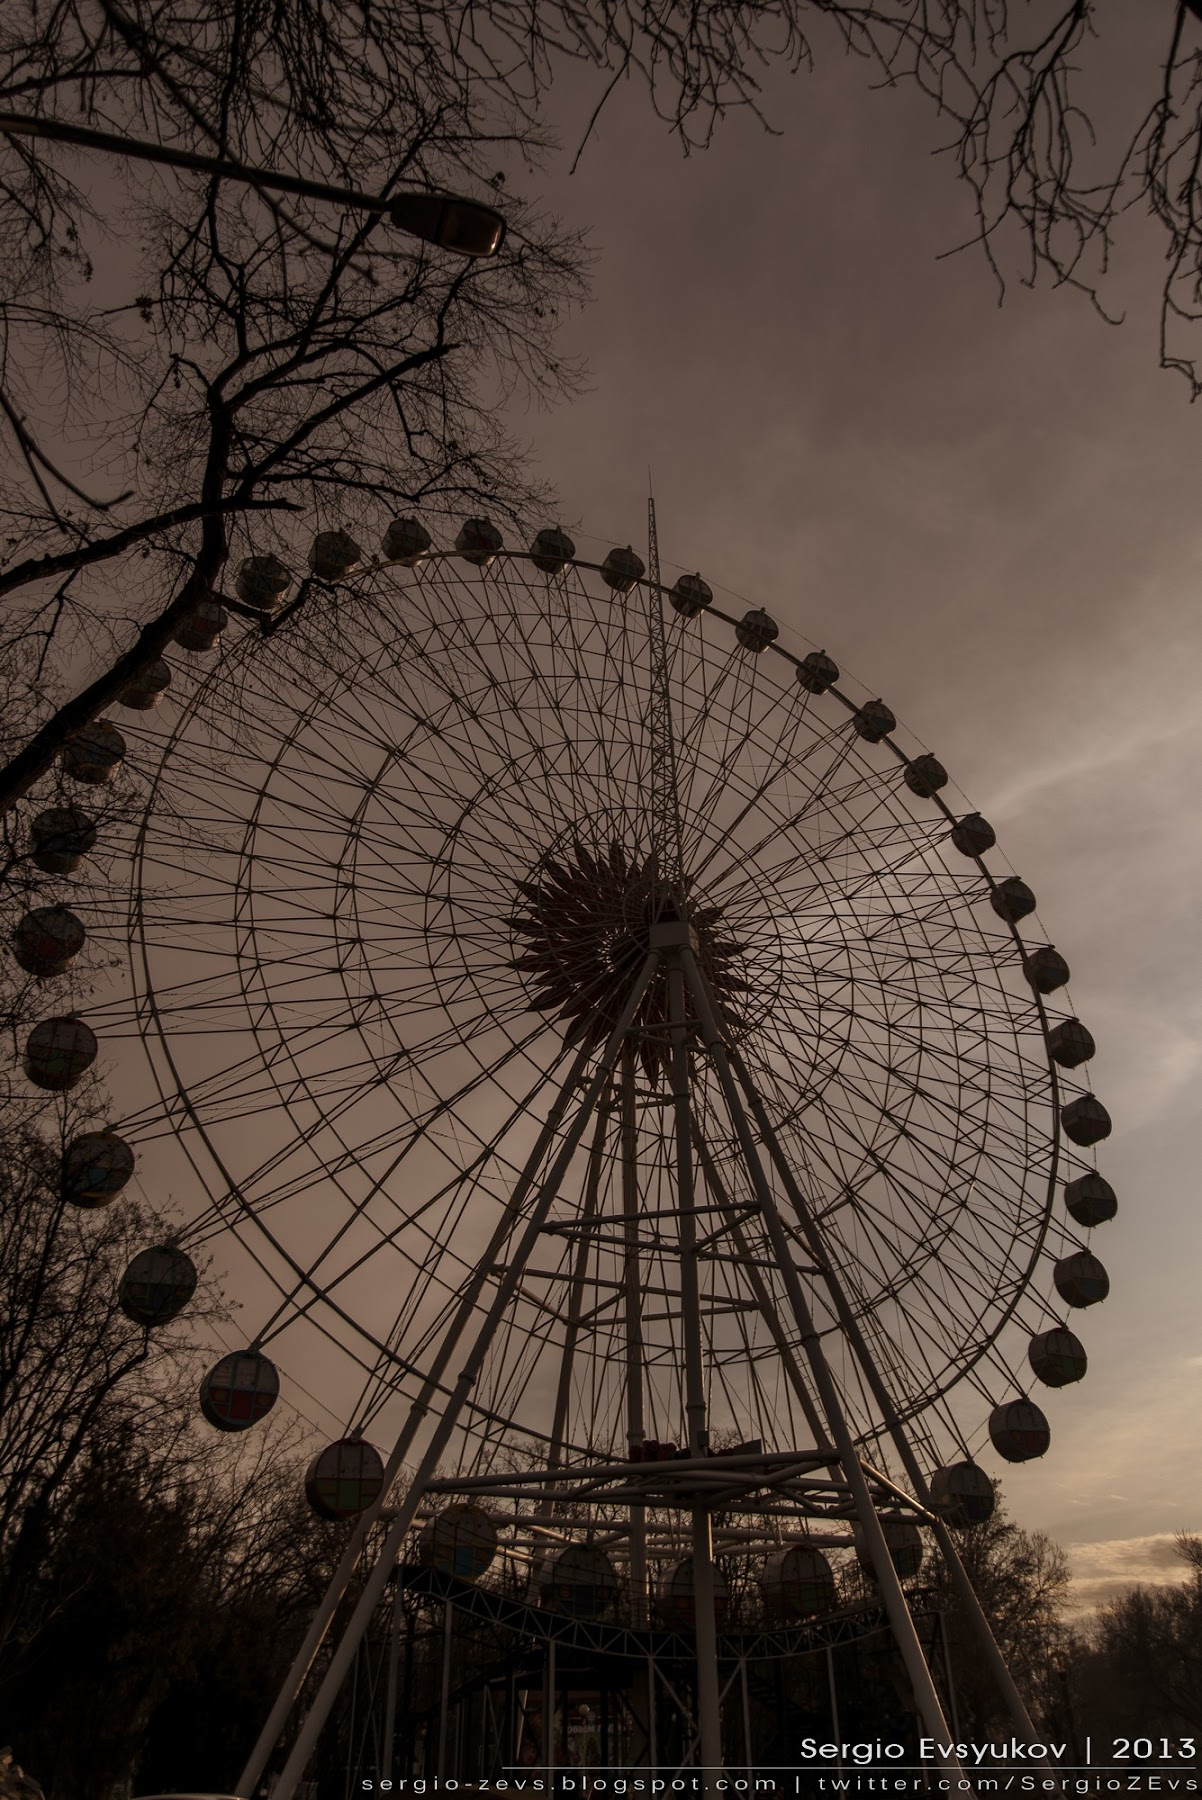 Krasnodar Ferris Wheel in City garden